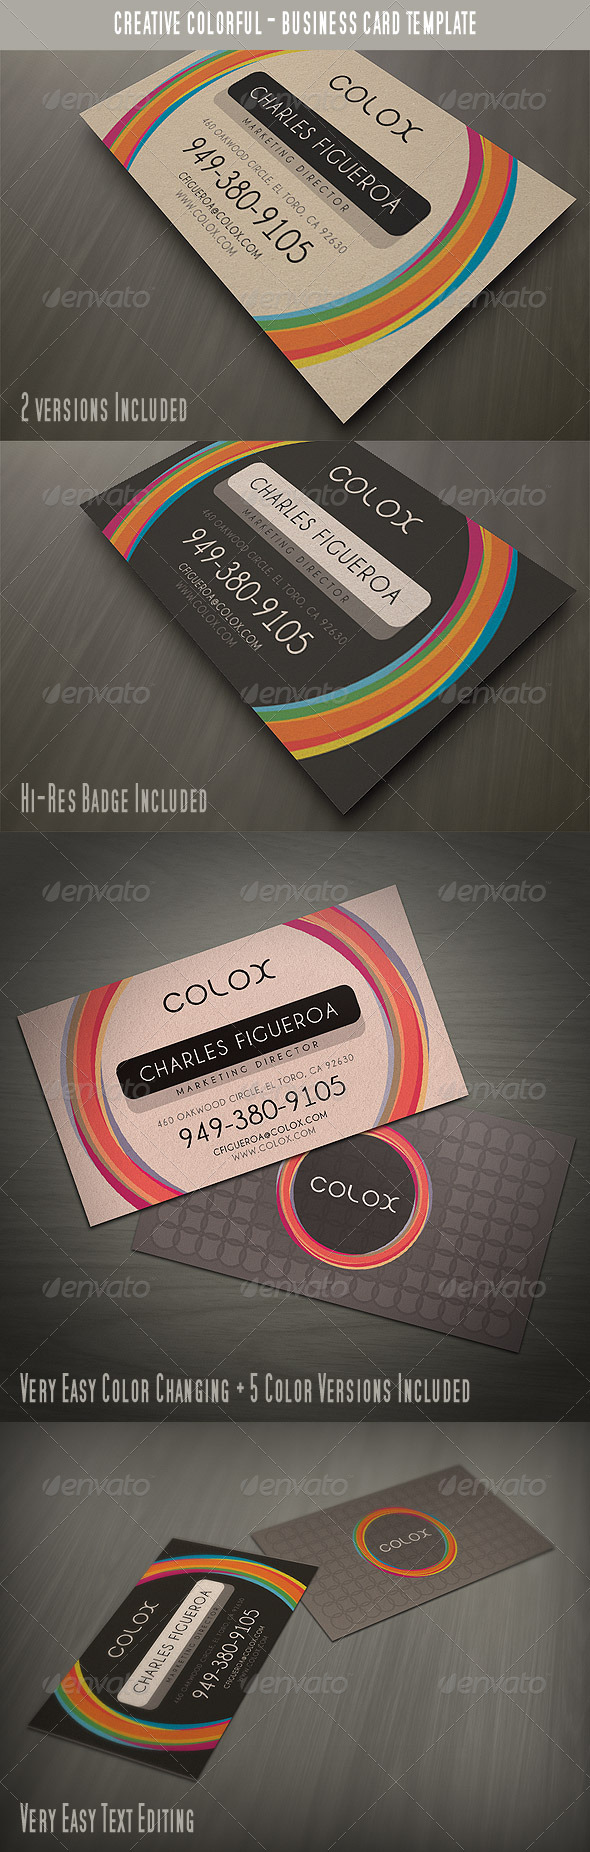 Creative Colorful Style Business Card - Creative Business Cards